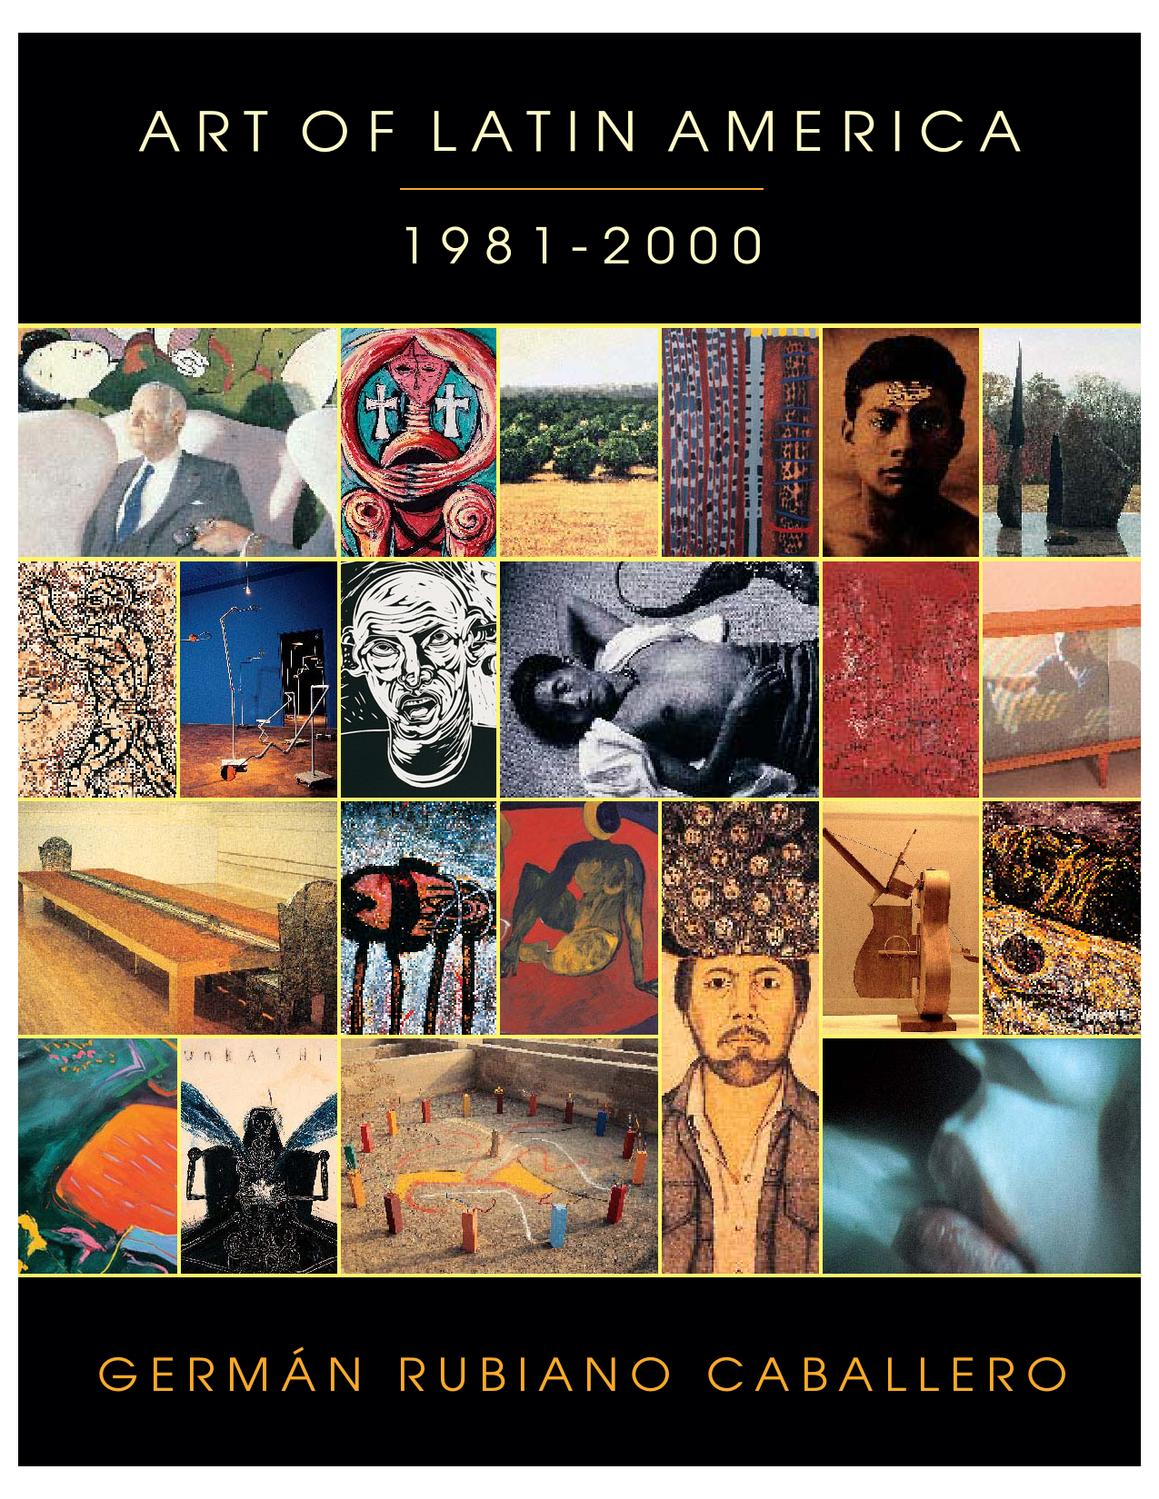 Elias Nohra Nude art of latin america: 1981 - 2000idb - issuu